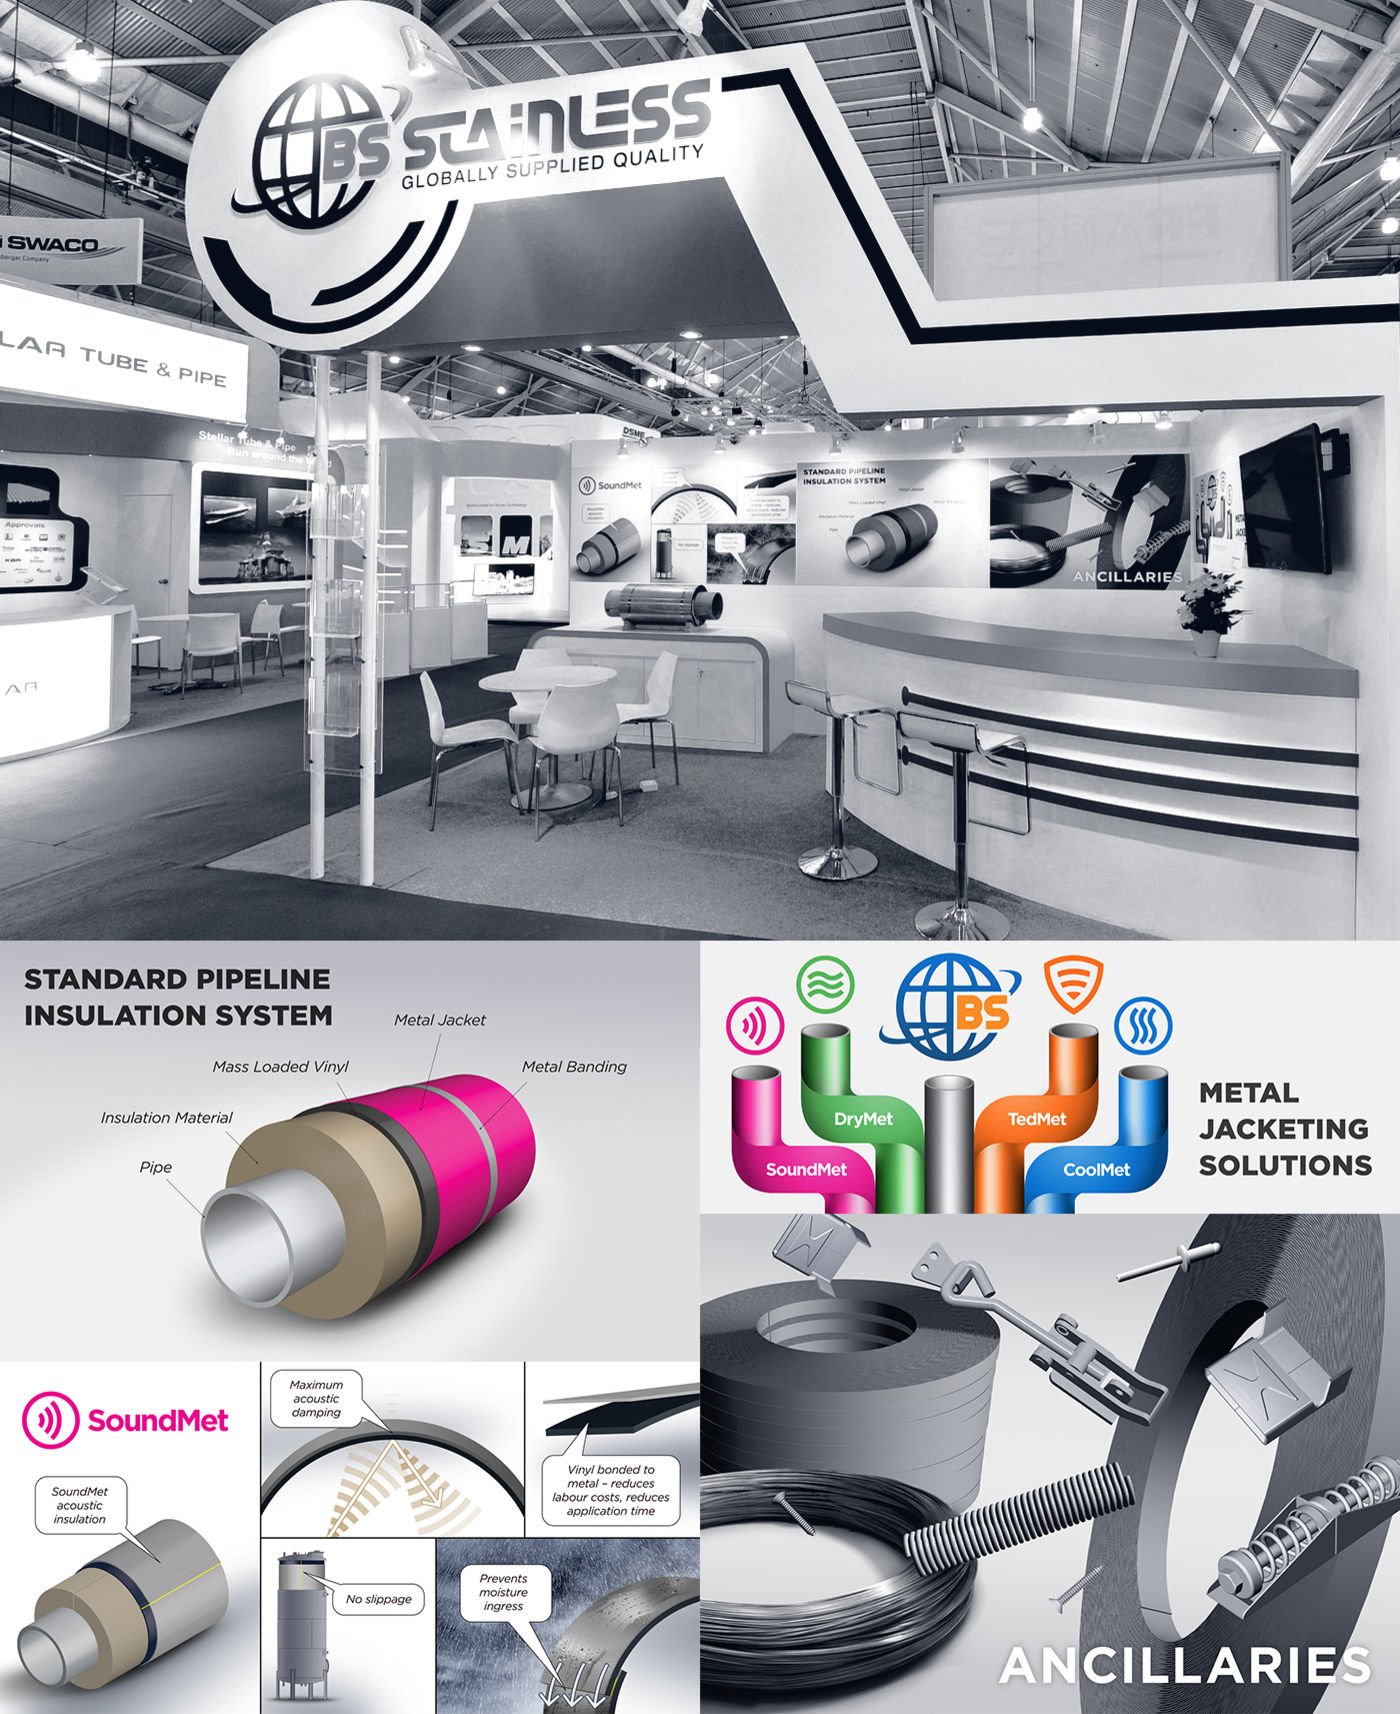 BS Stainless 2012 Gastech 2015 posters